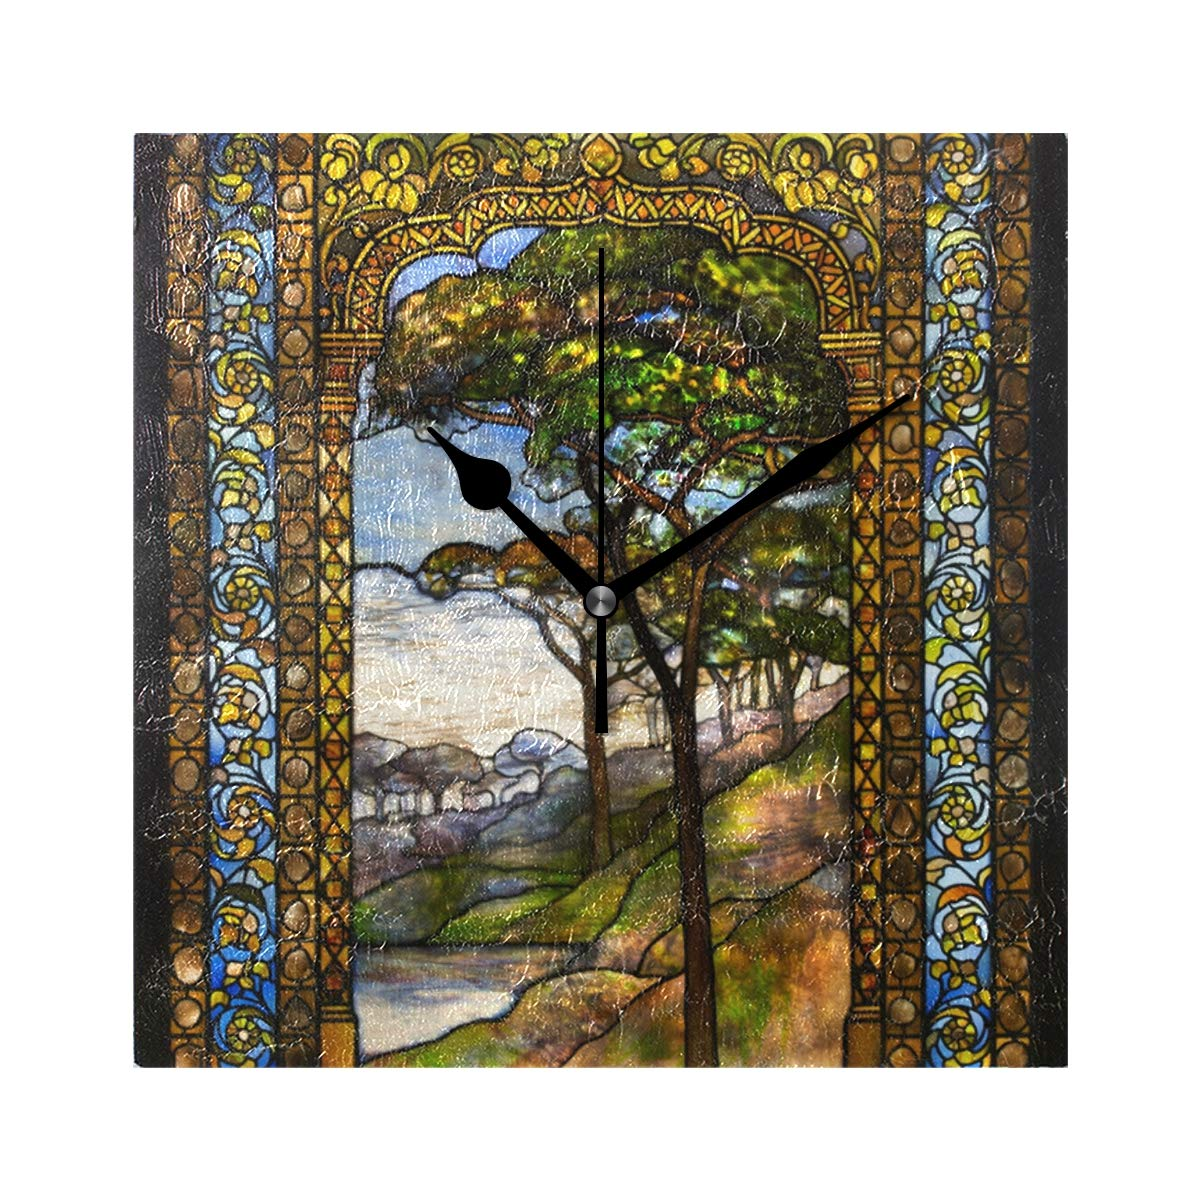 Amazon.com: LORVIES Stained Glass Windows Wall Clock Silent Non Ticking Acrylic 8 Inch Square Decorative Clock for Home/Office / Kitchen/Bedroom / Living ...